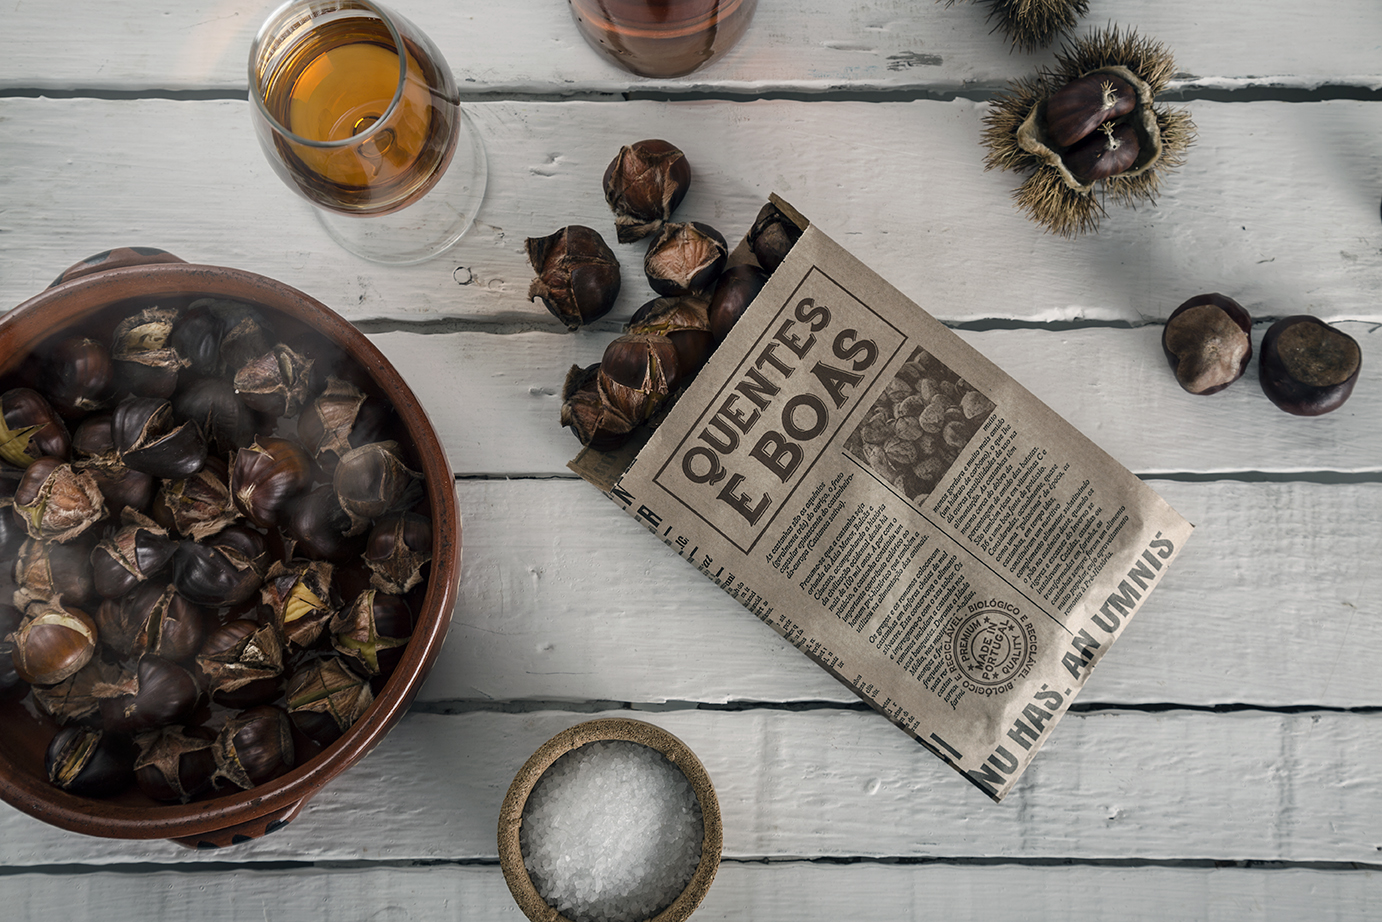 Meet the new Bag of Roasted Chestnuts